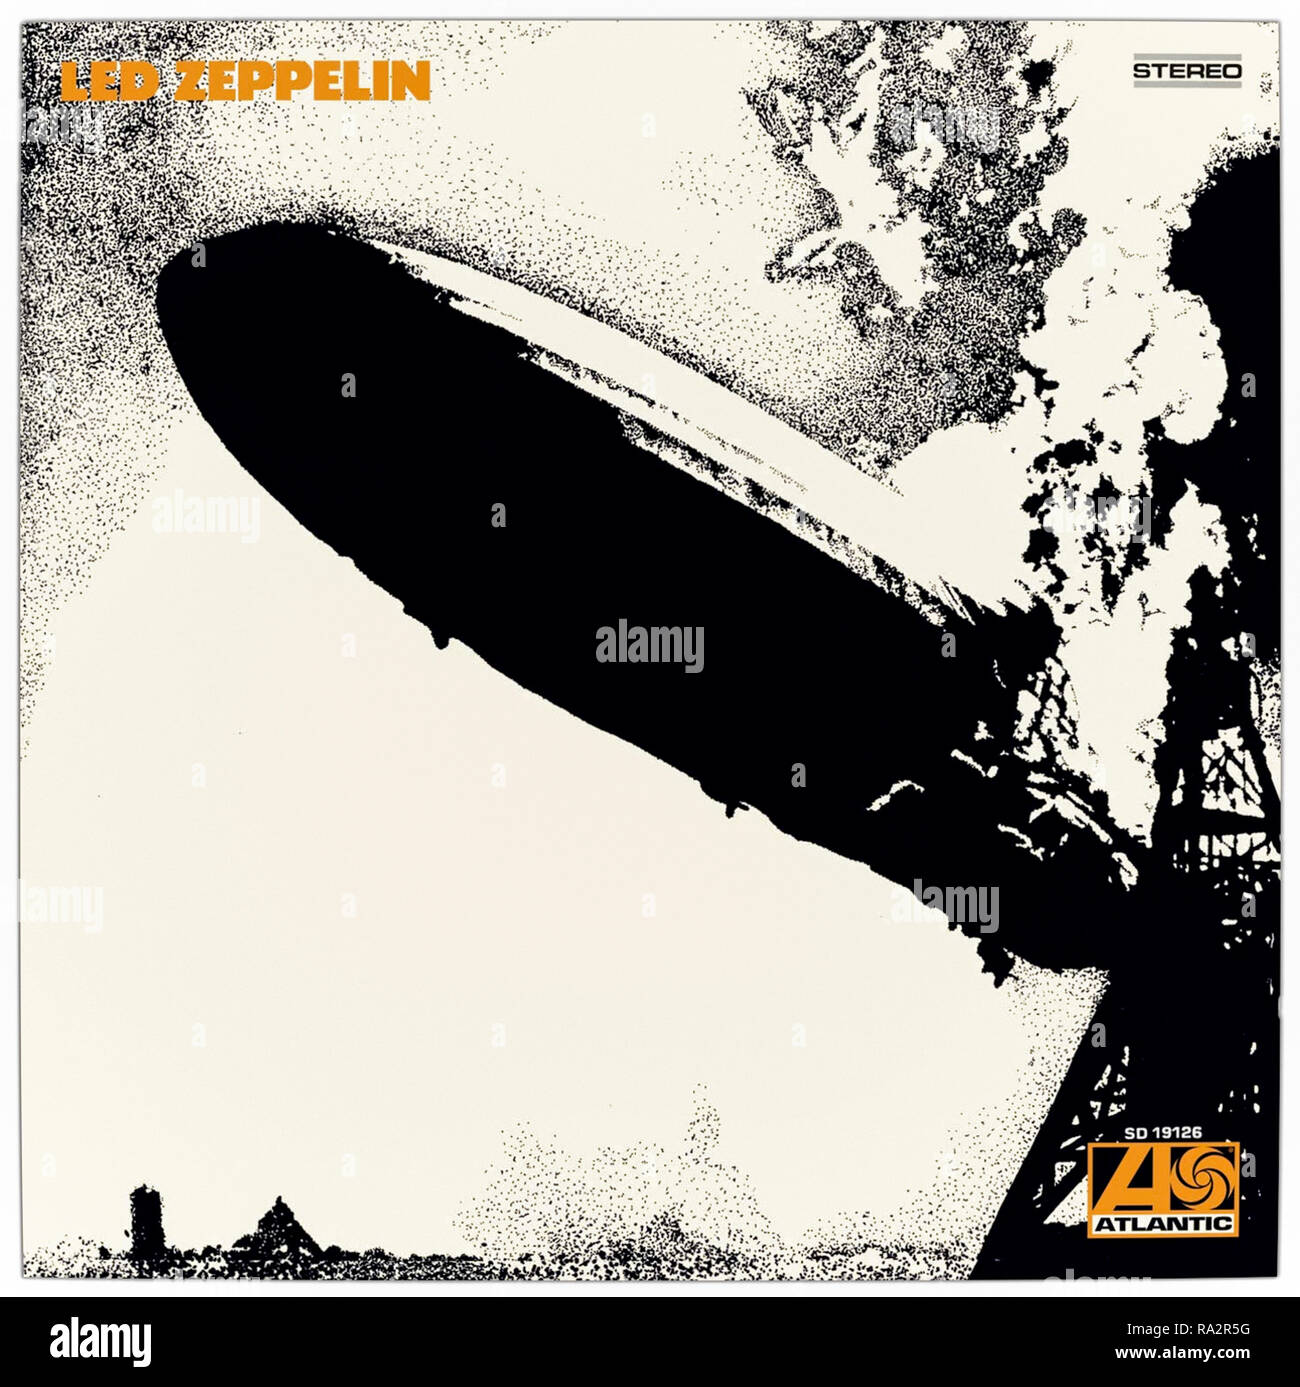 Led Zepplin (1969) by Led Zepplin LP front cover featuring a stylised photograph of the LZ 129 Hindenburg airship catching fire by its mooring dock. - Stock Image